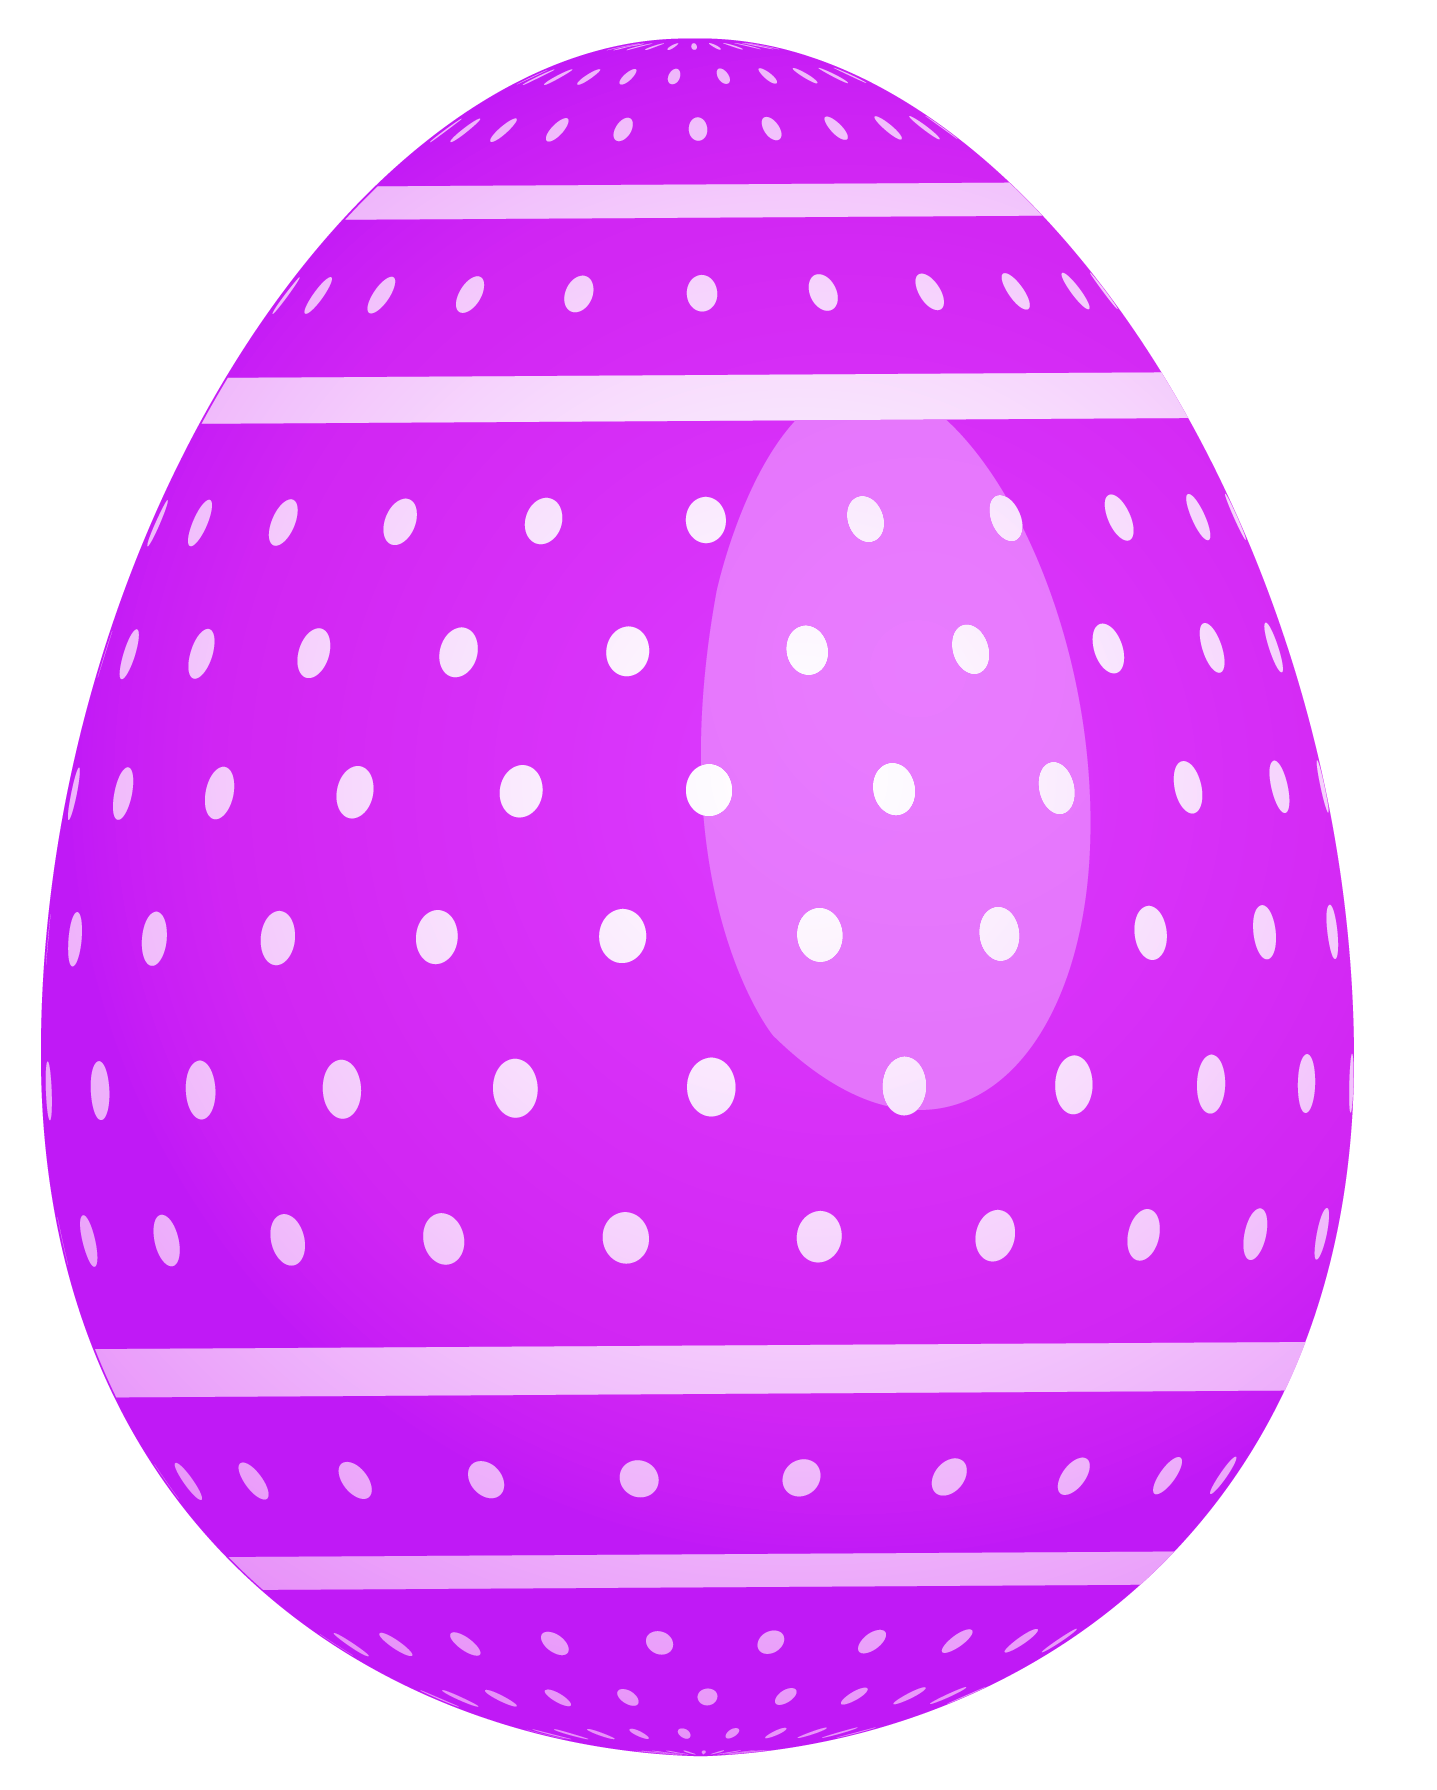 Easter egg easter chicken with pink clipart obrazki 2.